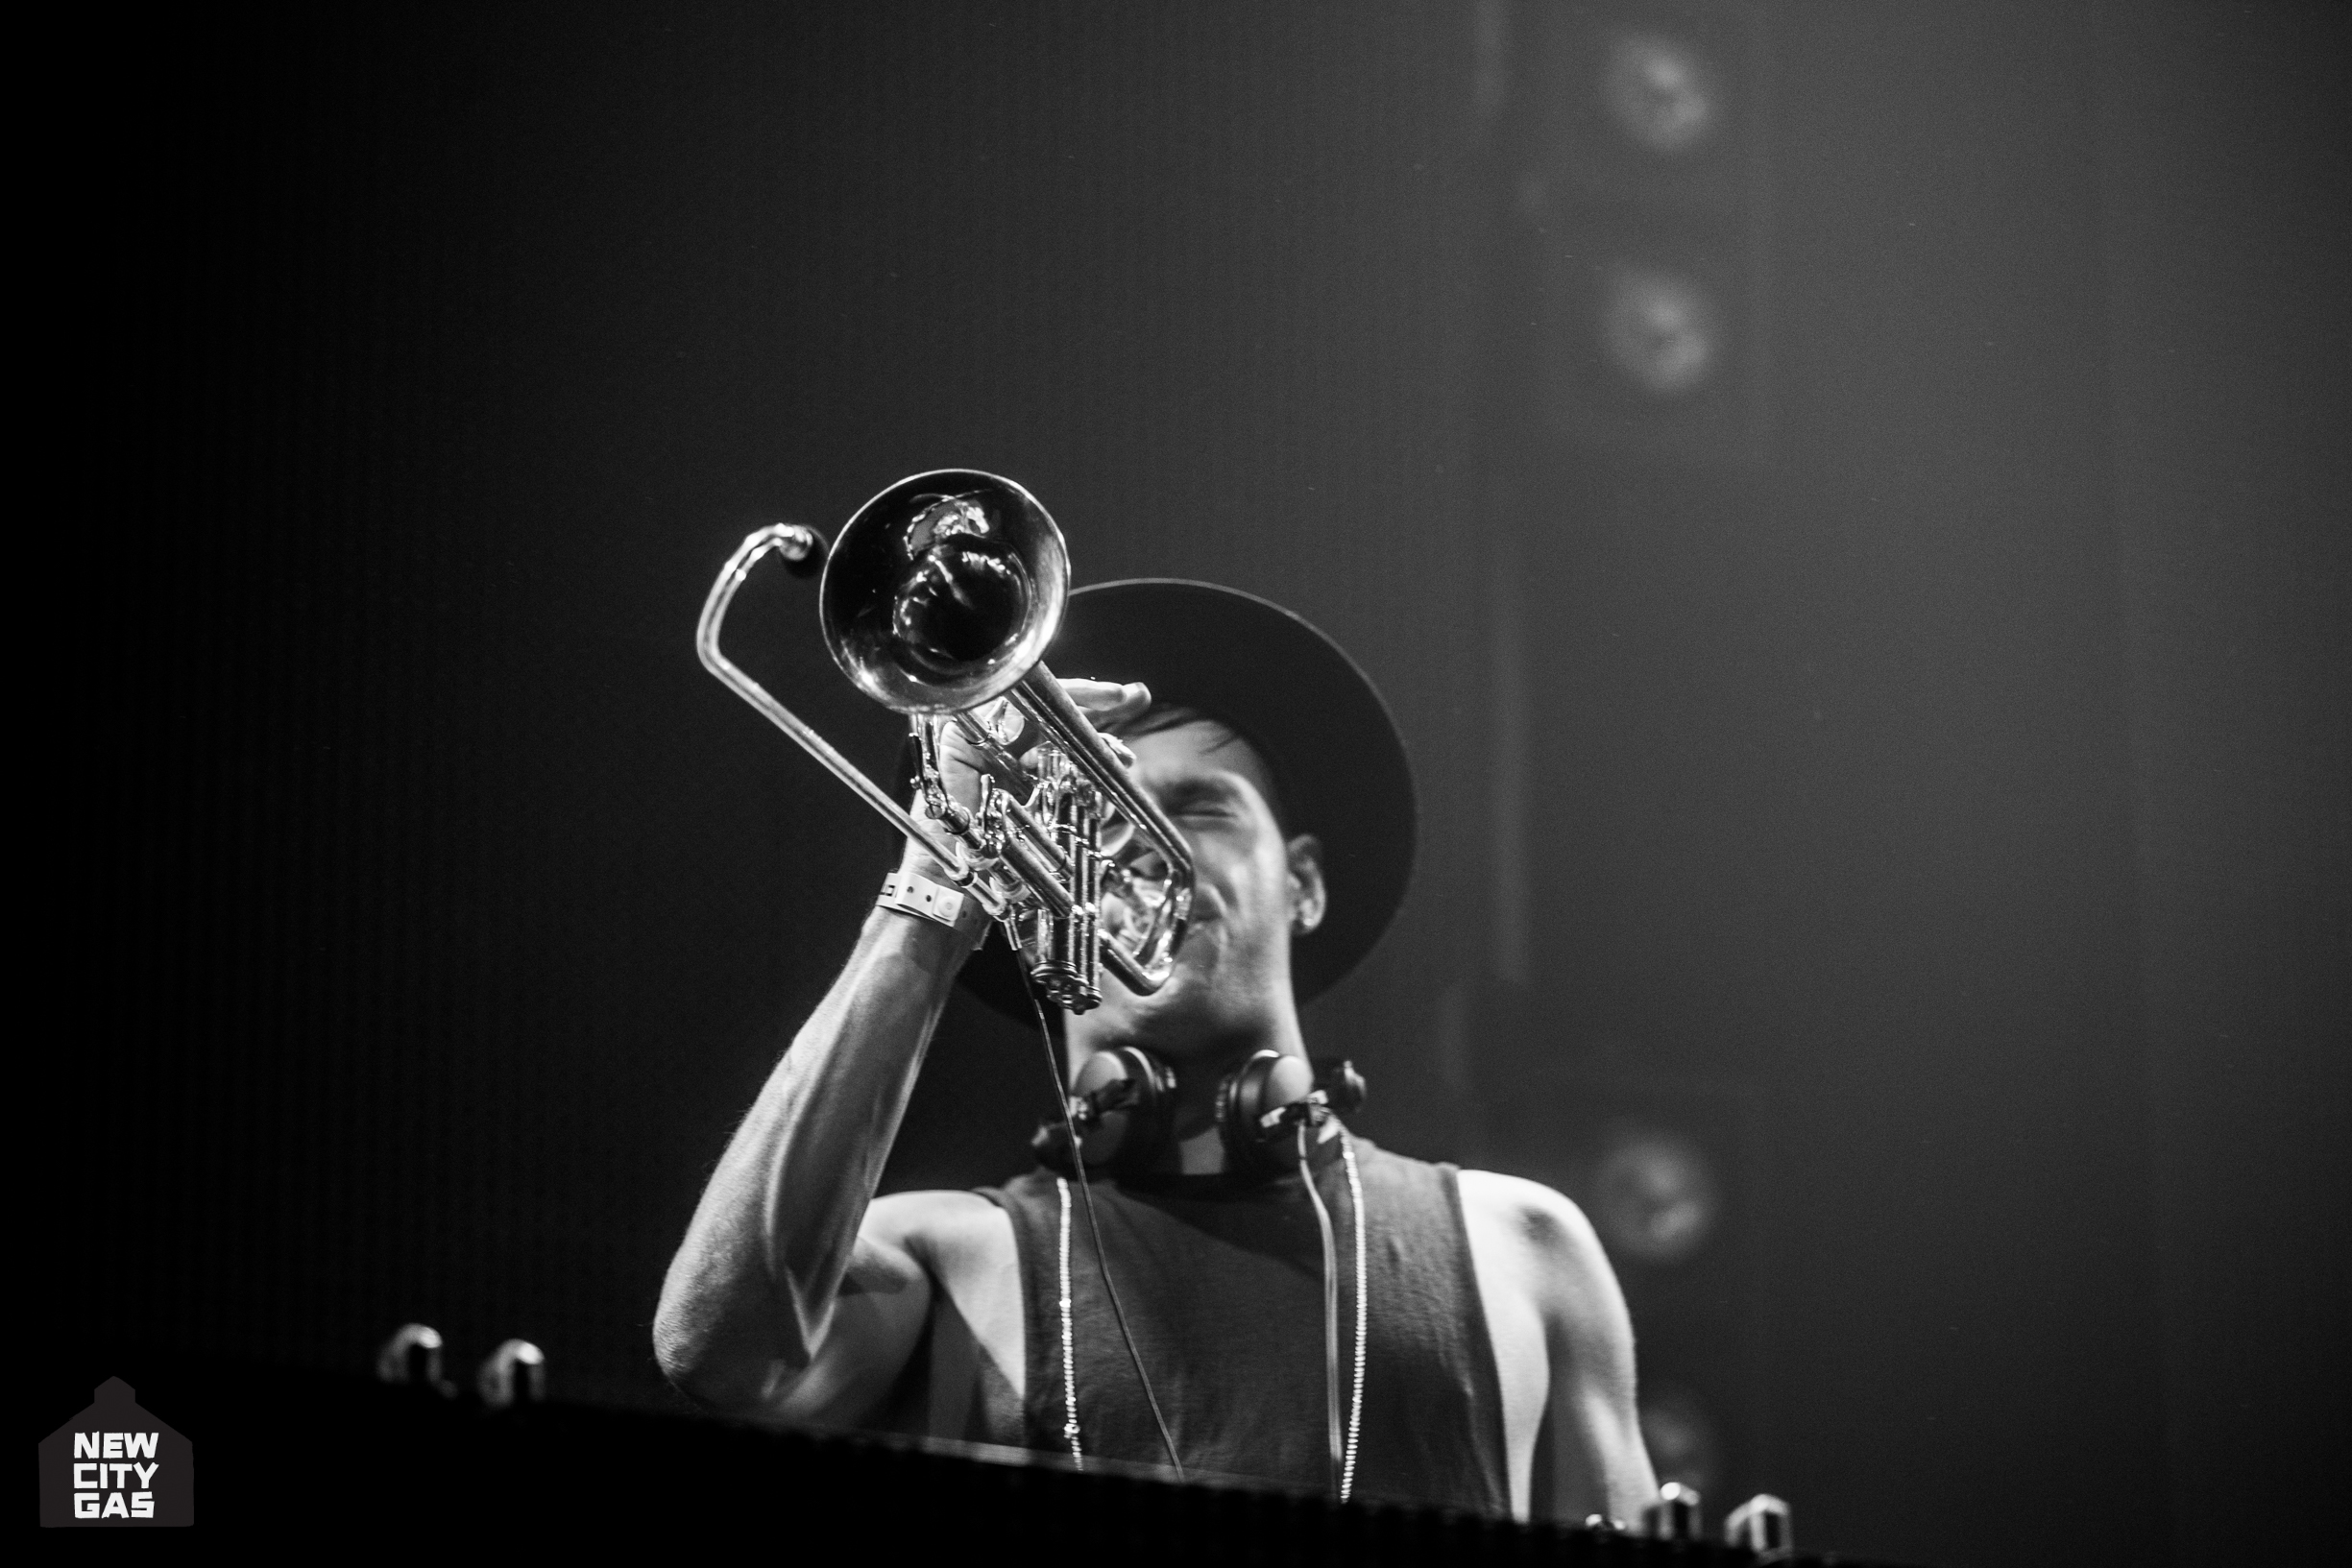 Timmy Trumpet Wallpapers Hd